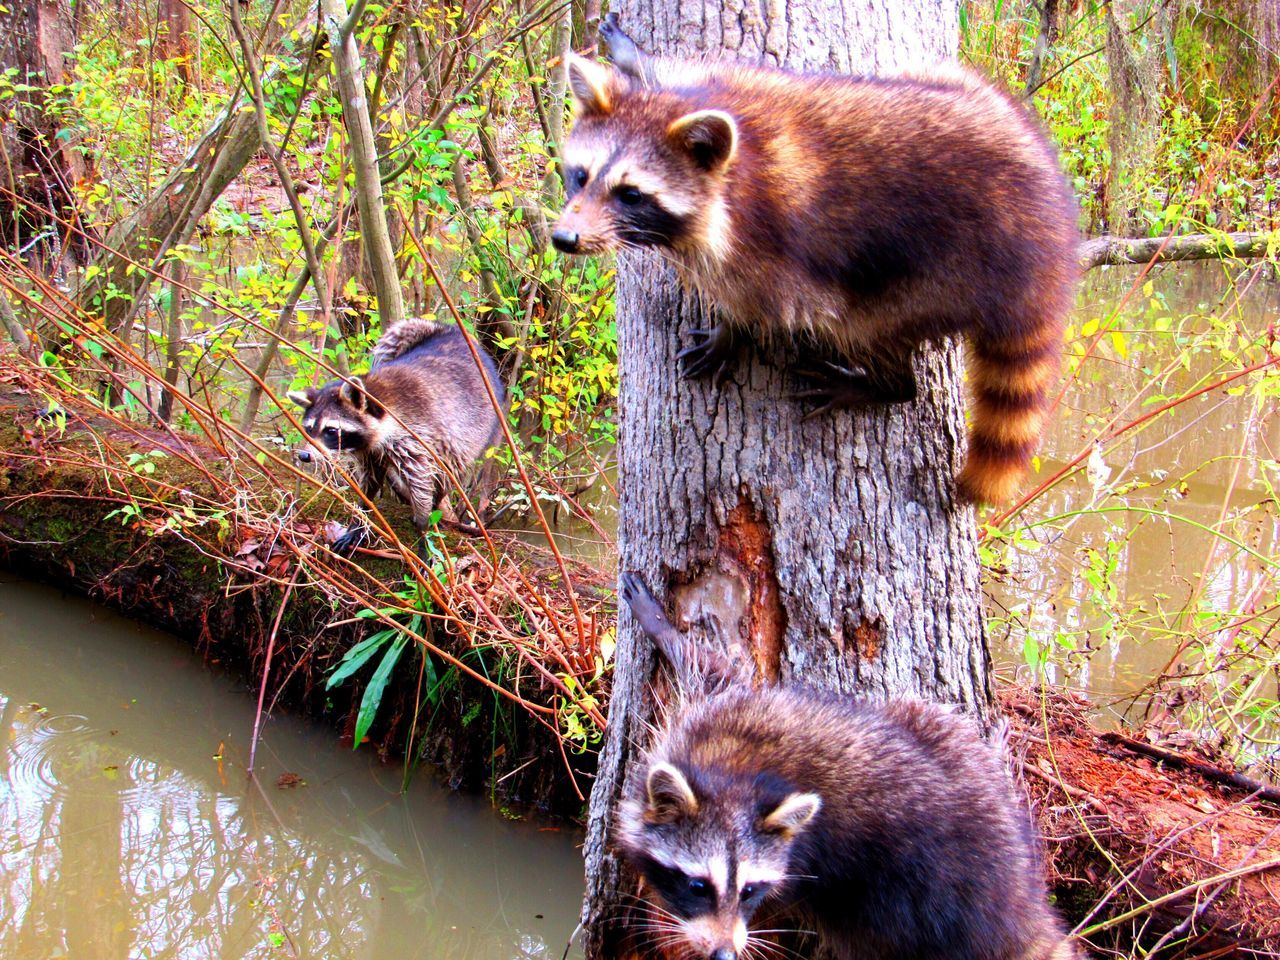 animal wildlife, animals in the wild, mammal, animal themes, raccoon, nature, tree, outdoors, no people, day, red panda, grass, close-up